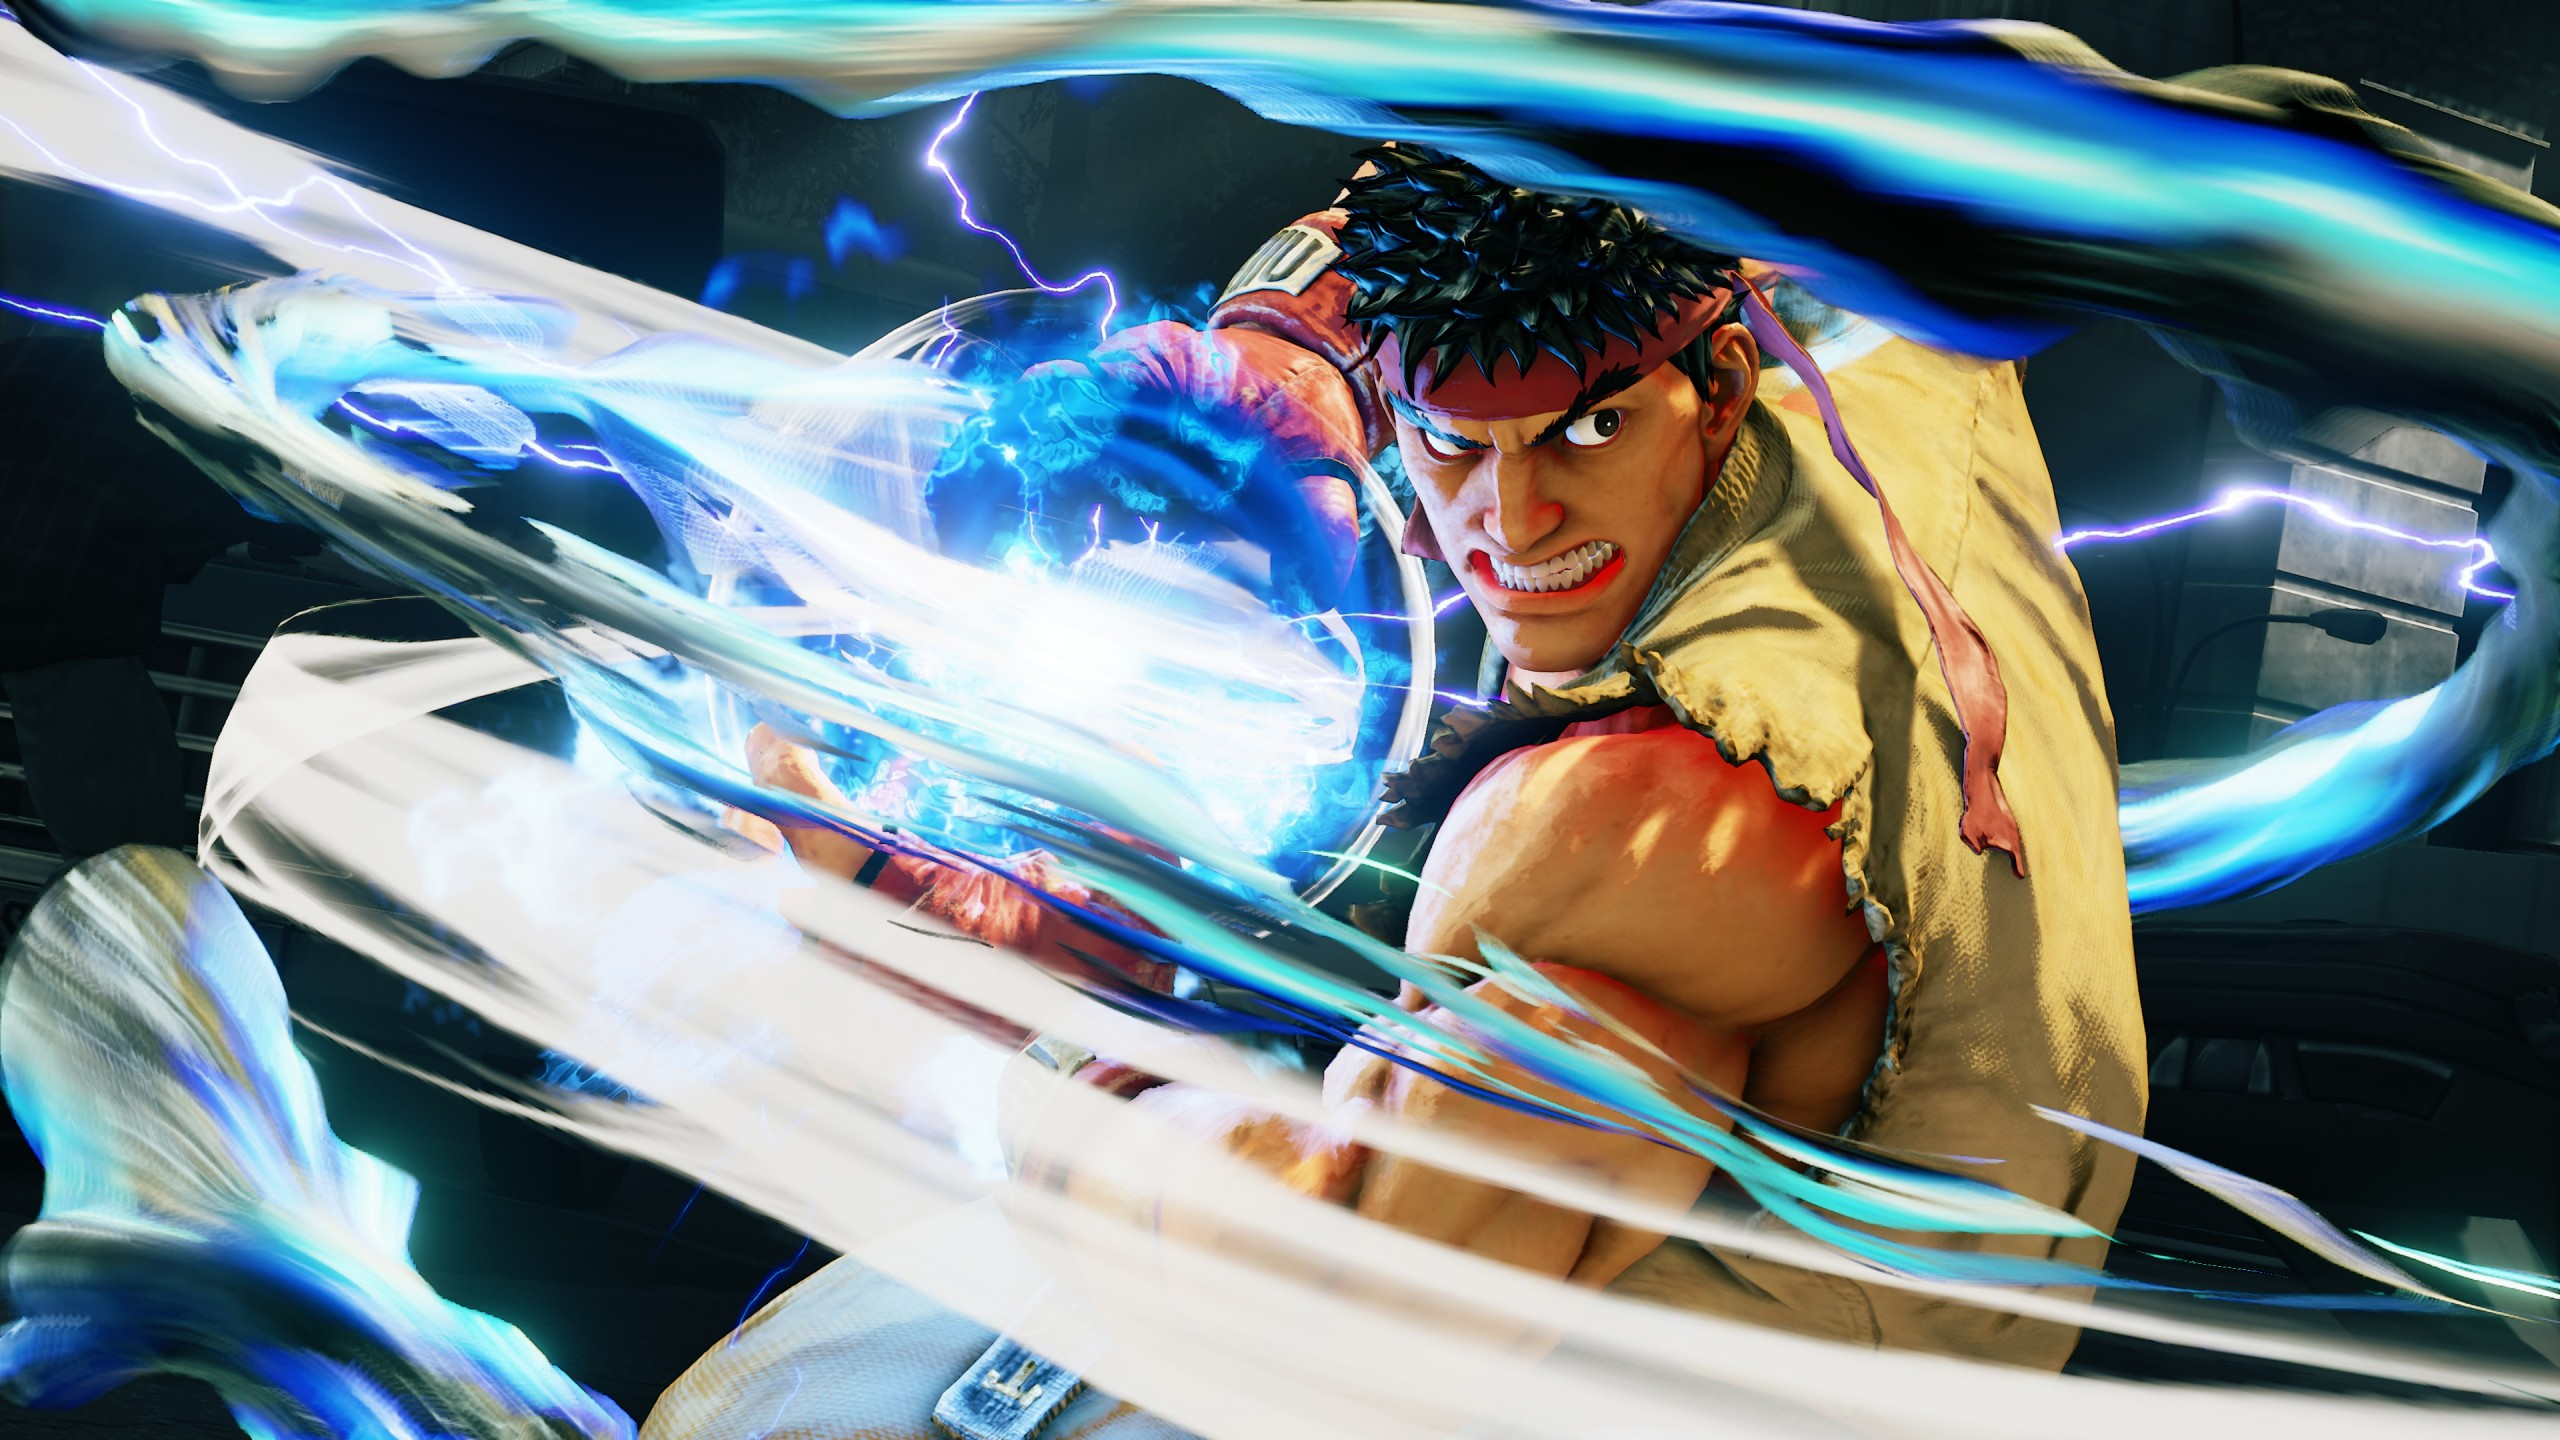 ryu street fighter 5 wallpapers